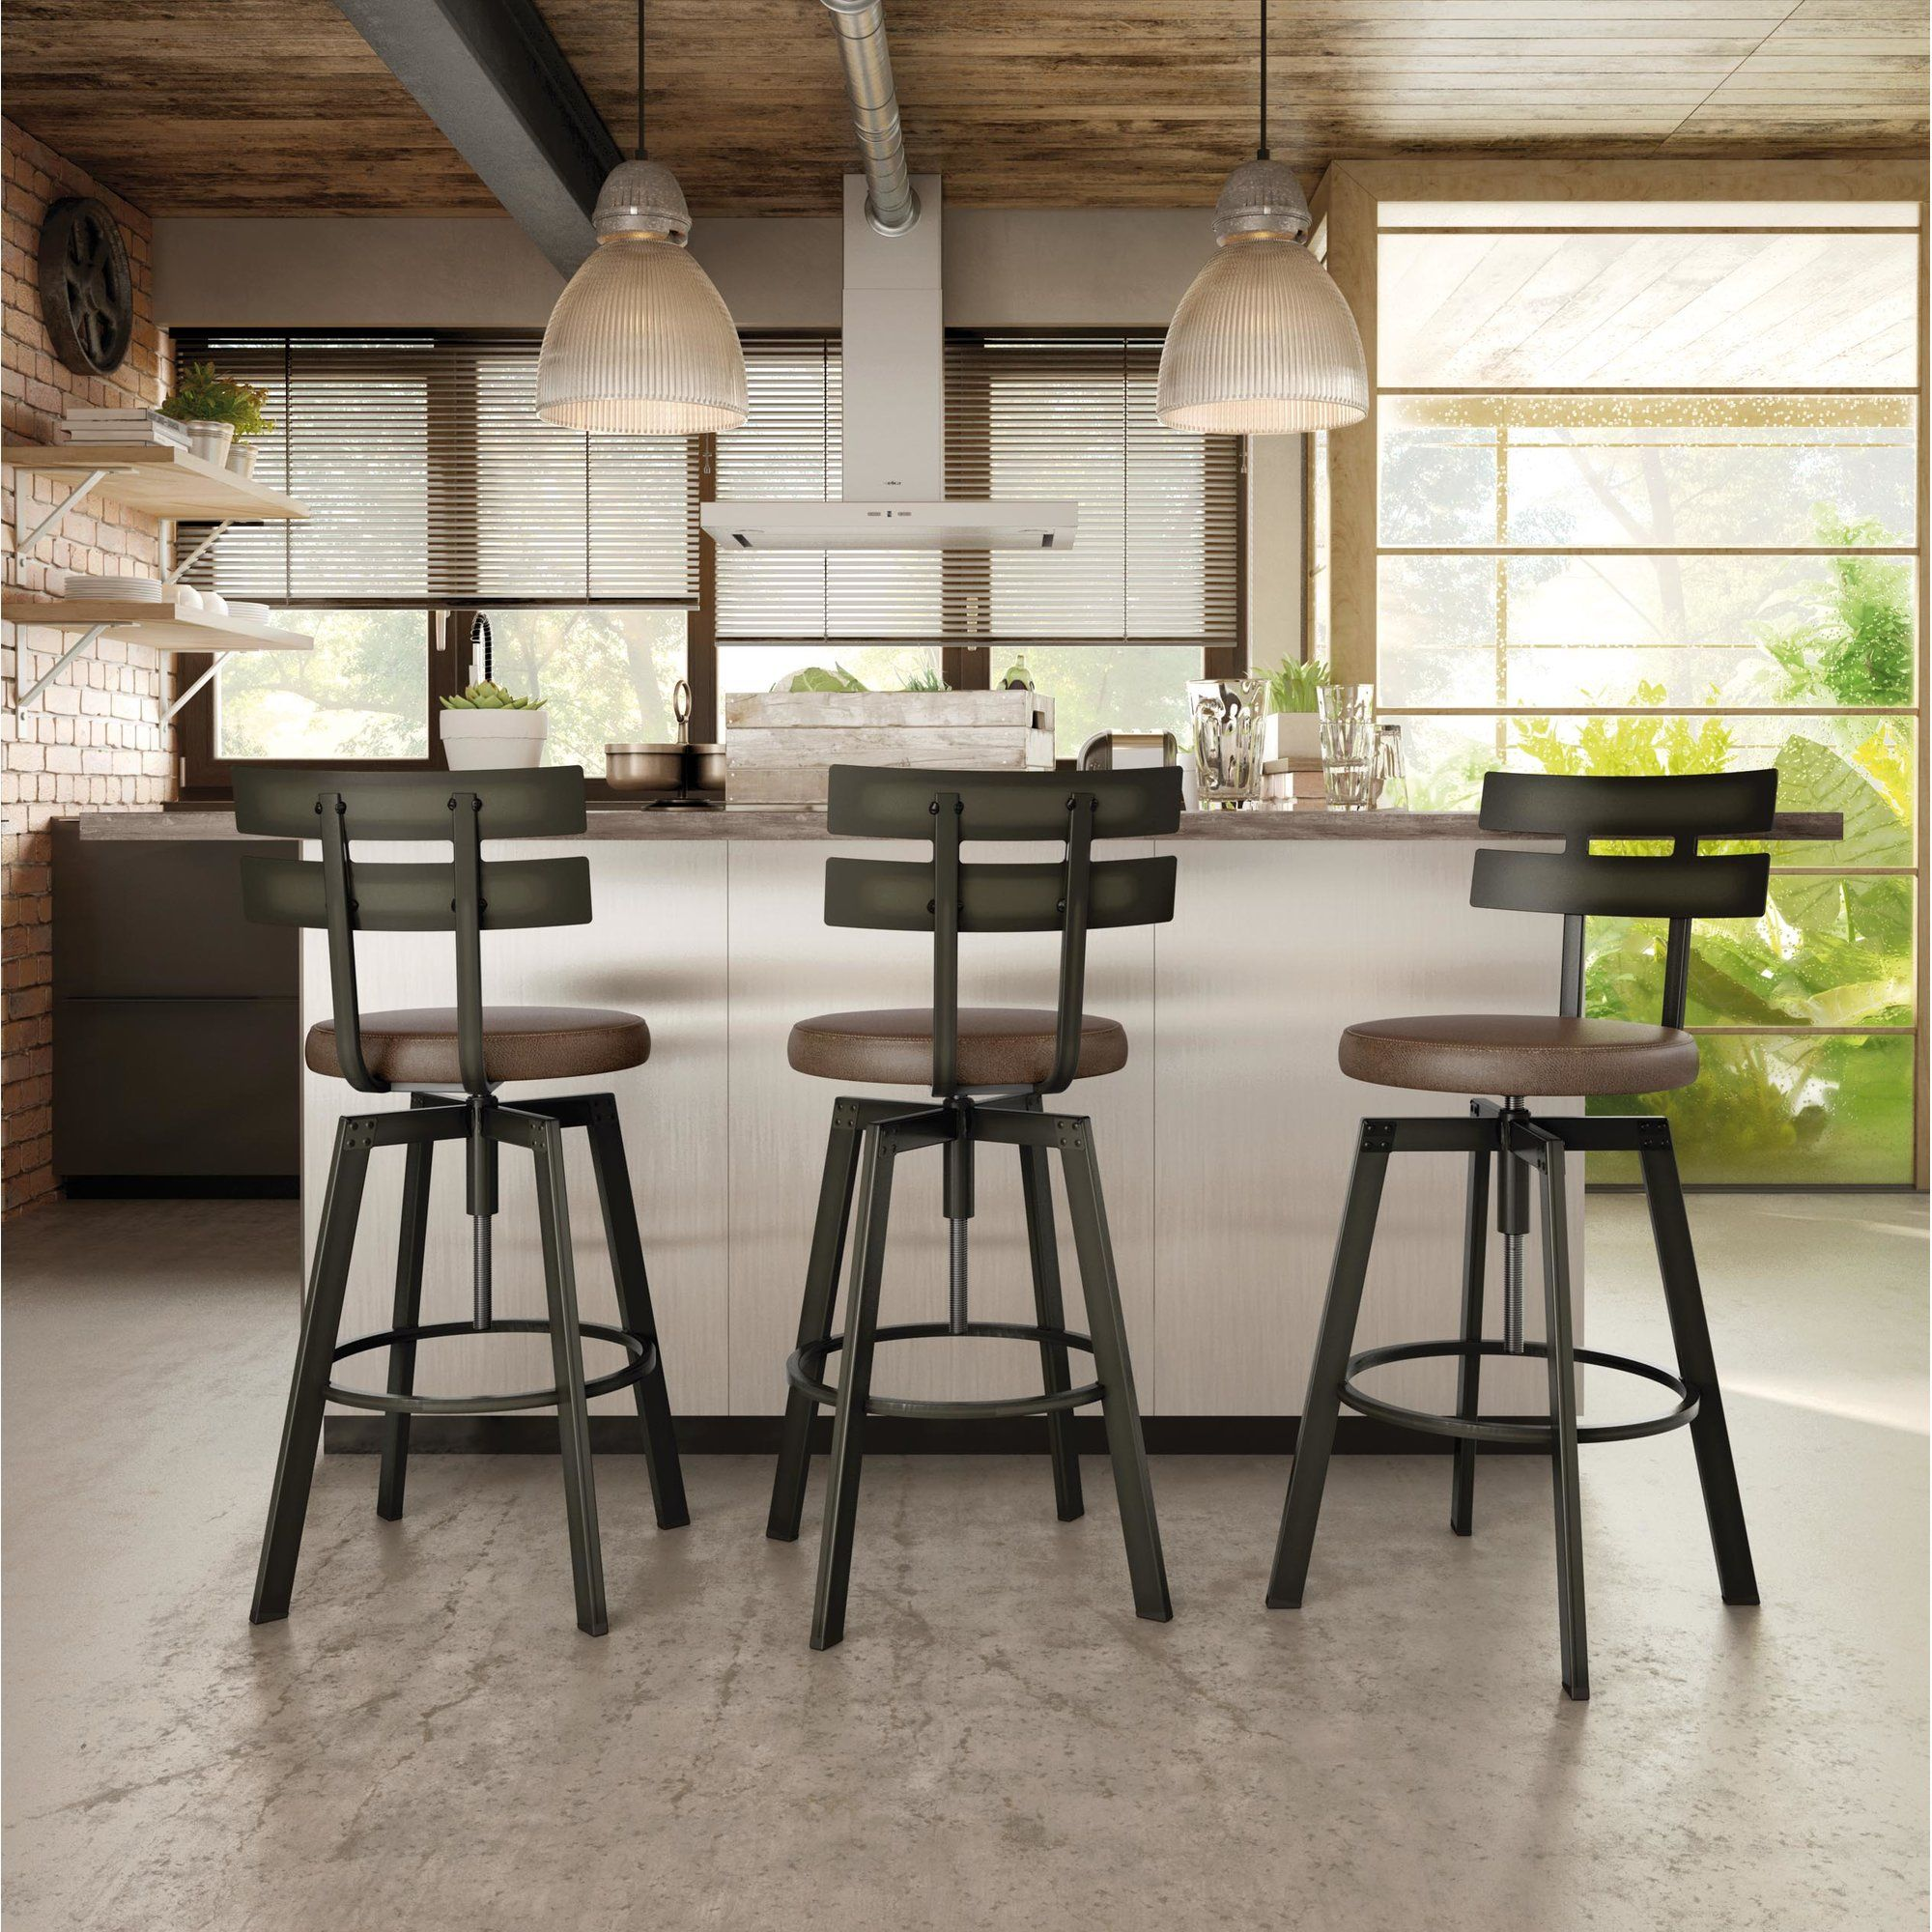 Berrycone Adjustable Height Bar Stool Byron Kitchen In